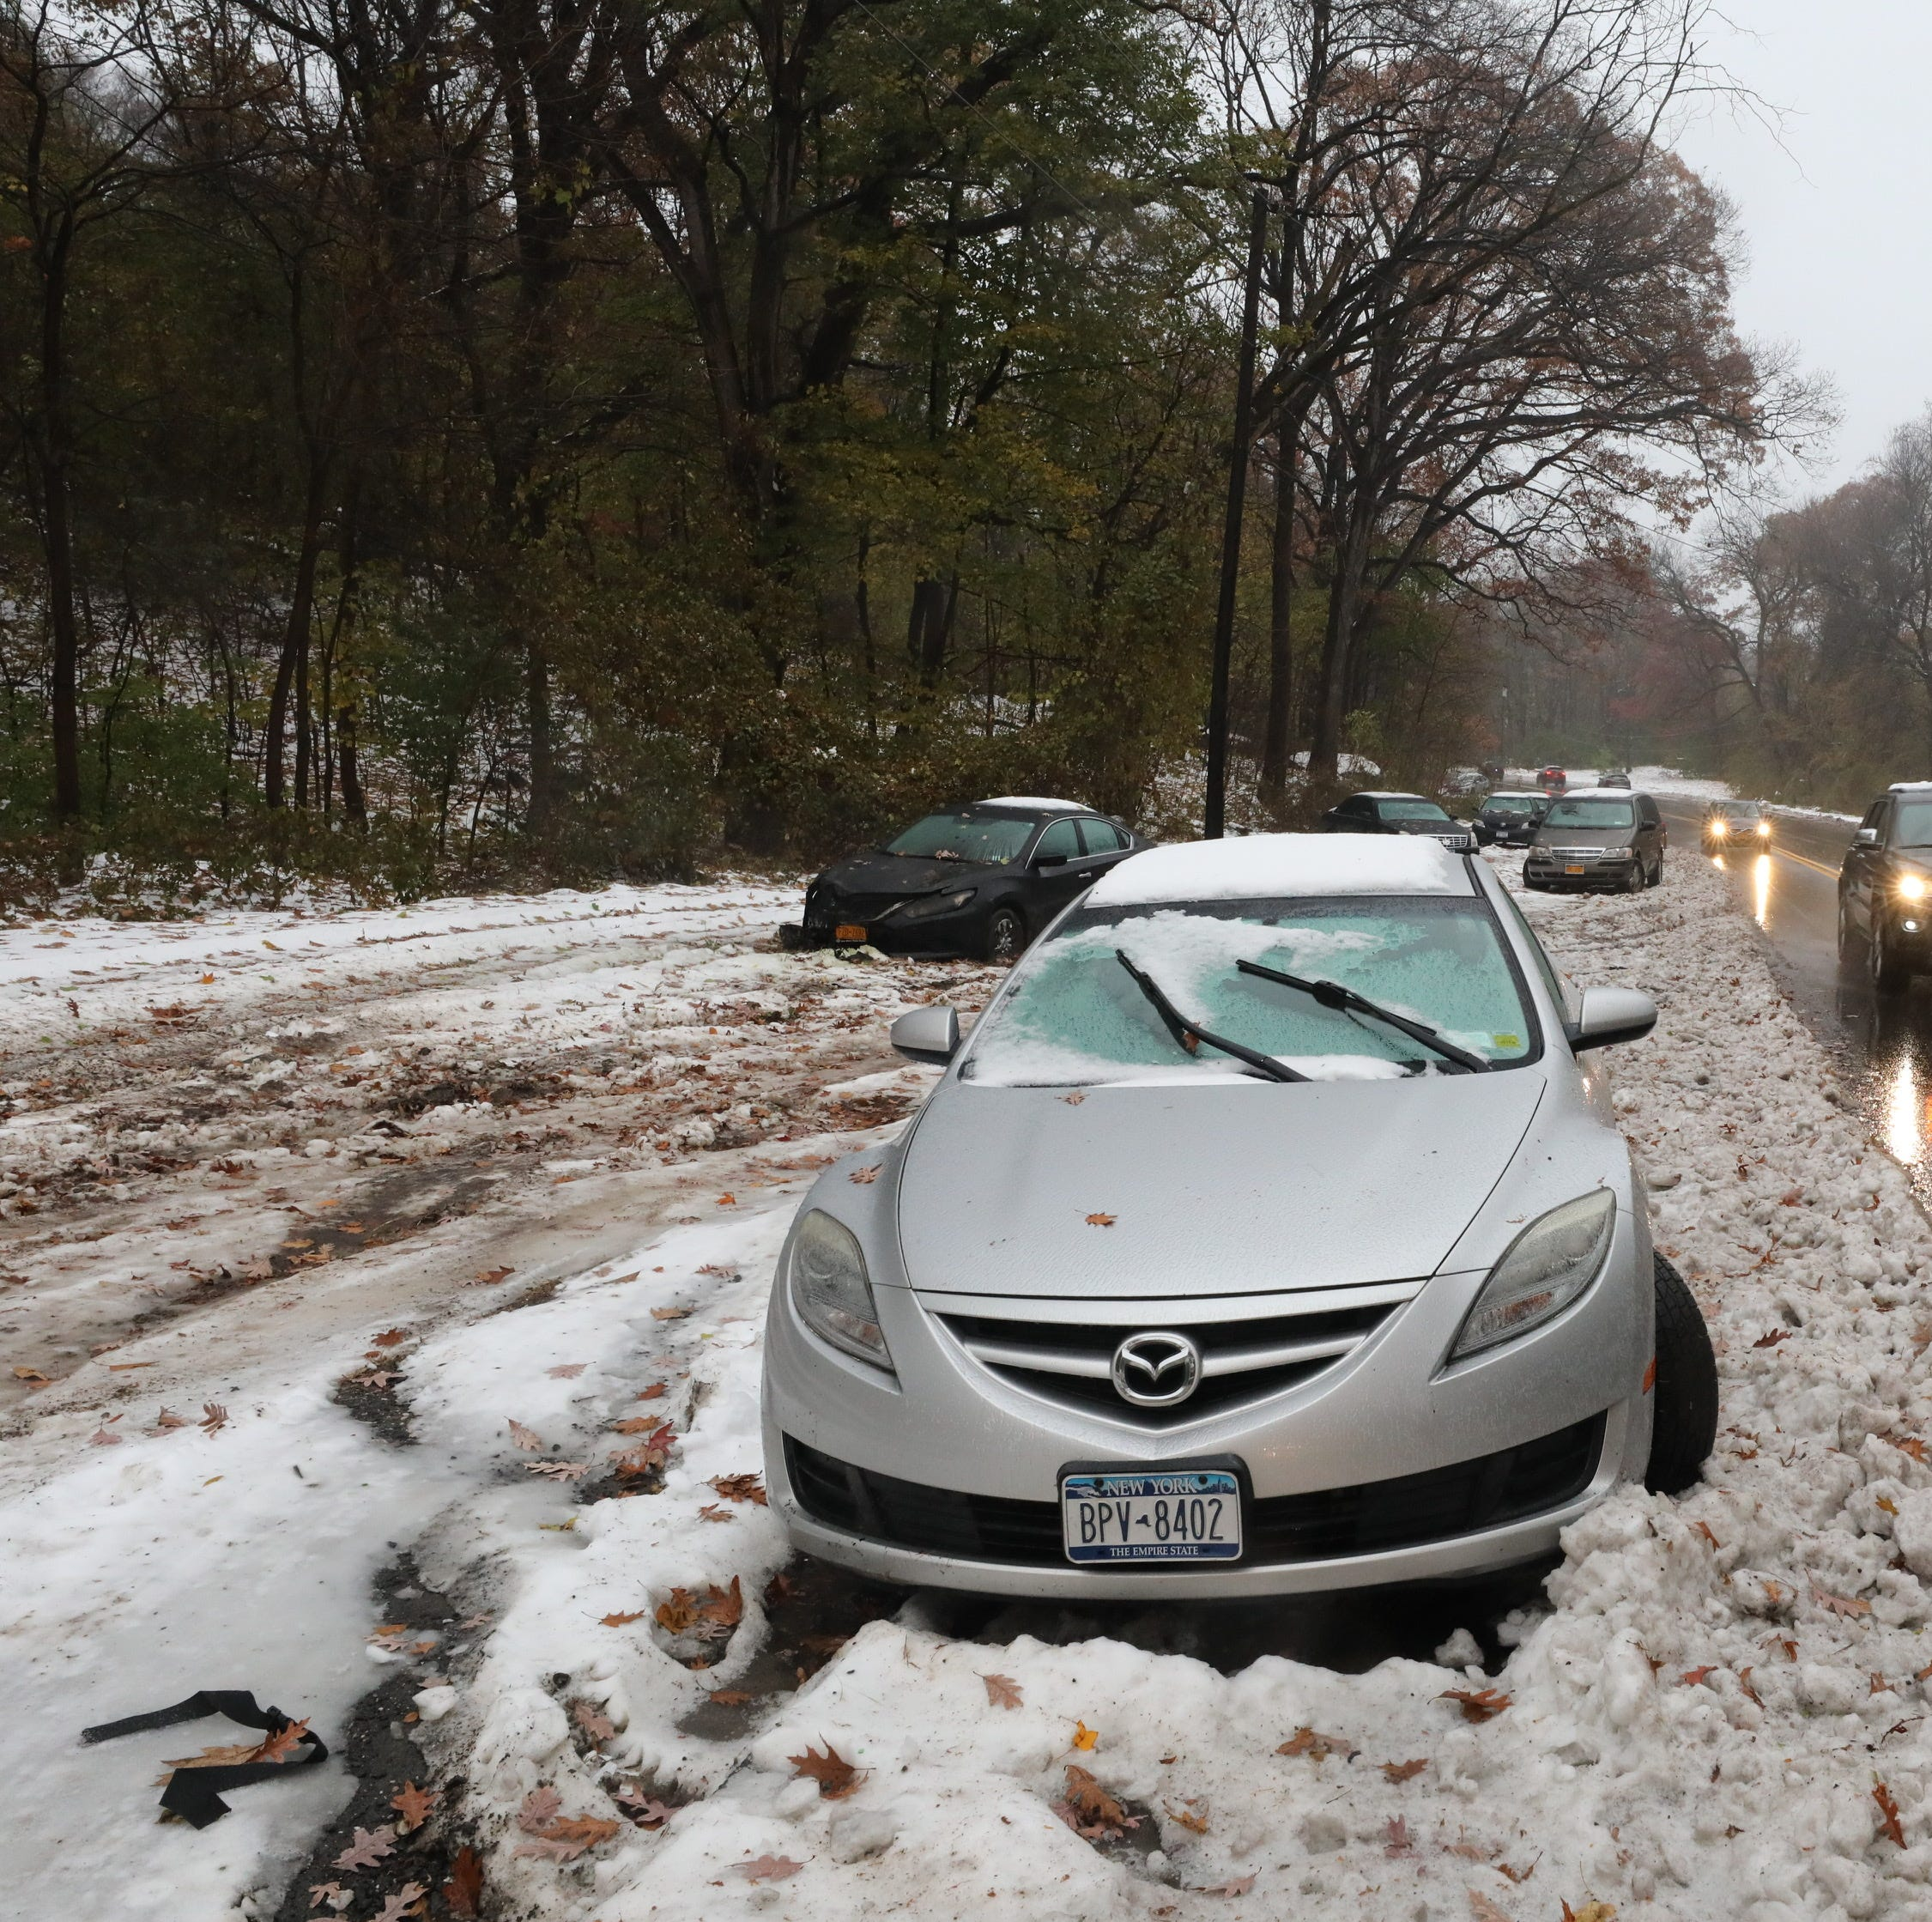 Nightmare: How the snowstorm caught commuters, officials by surprise